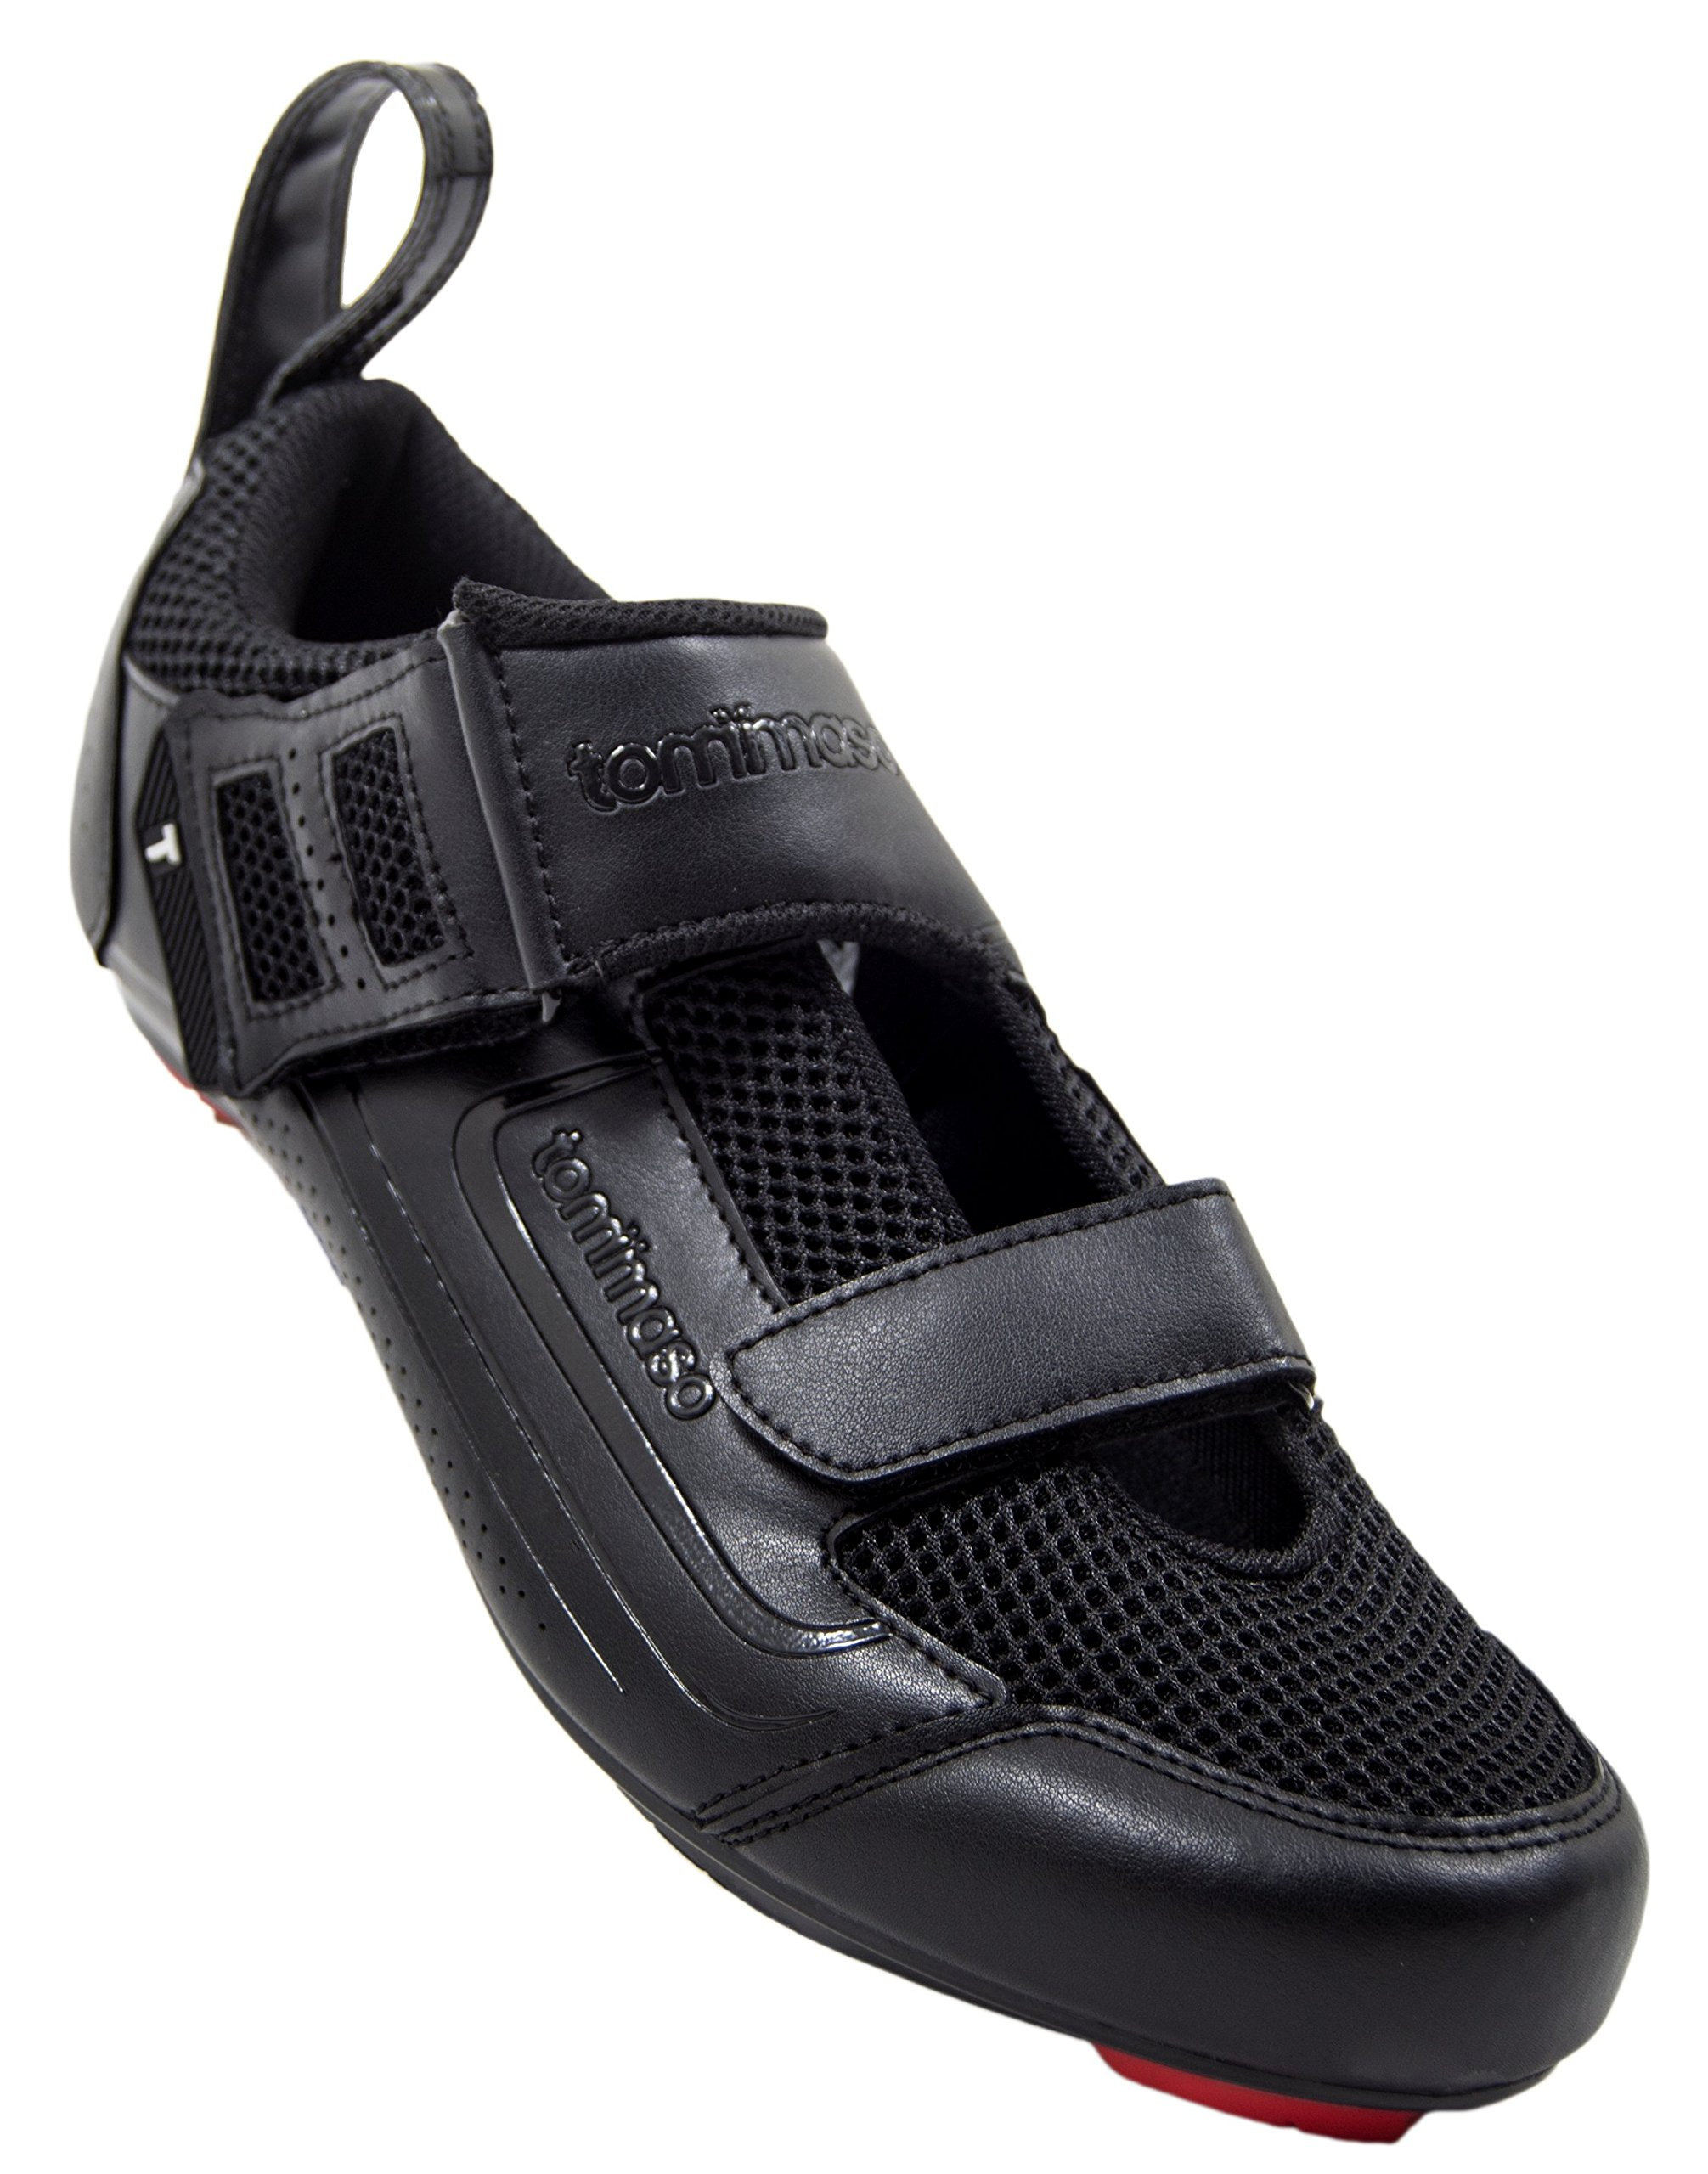 tommaso Veloce 100 Triathlon Road Cycling Shoe - Black - 41